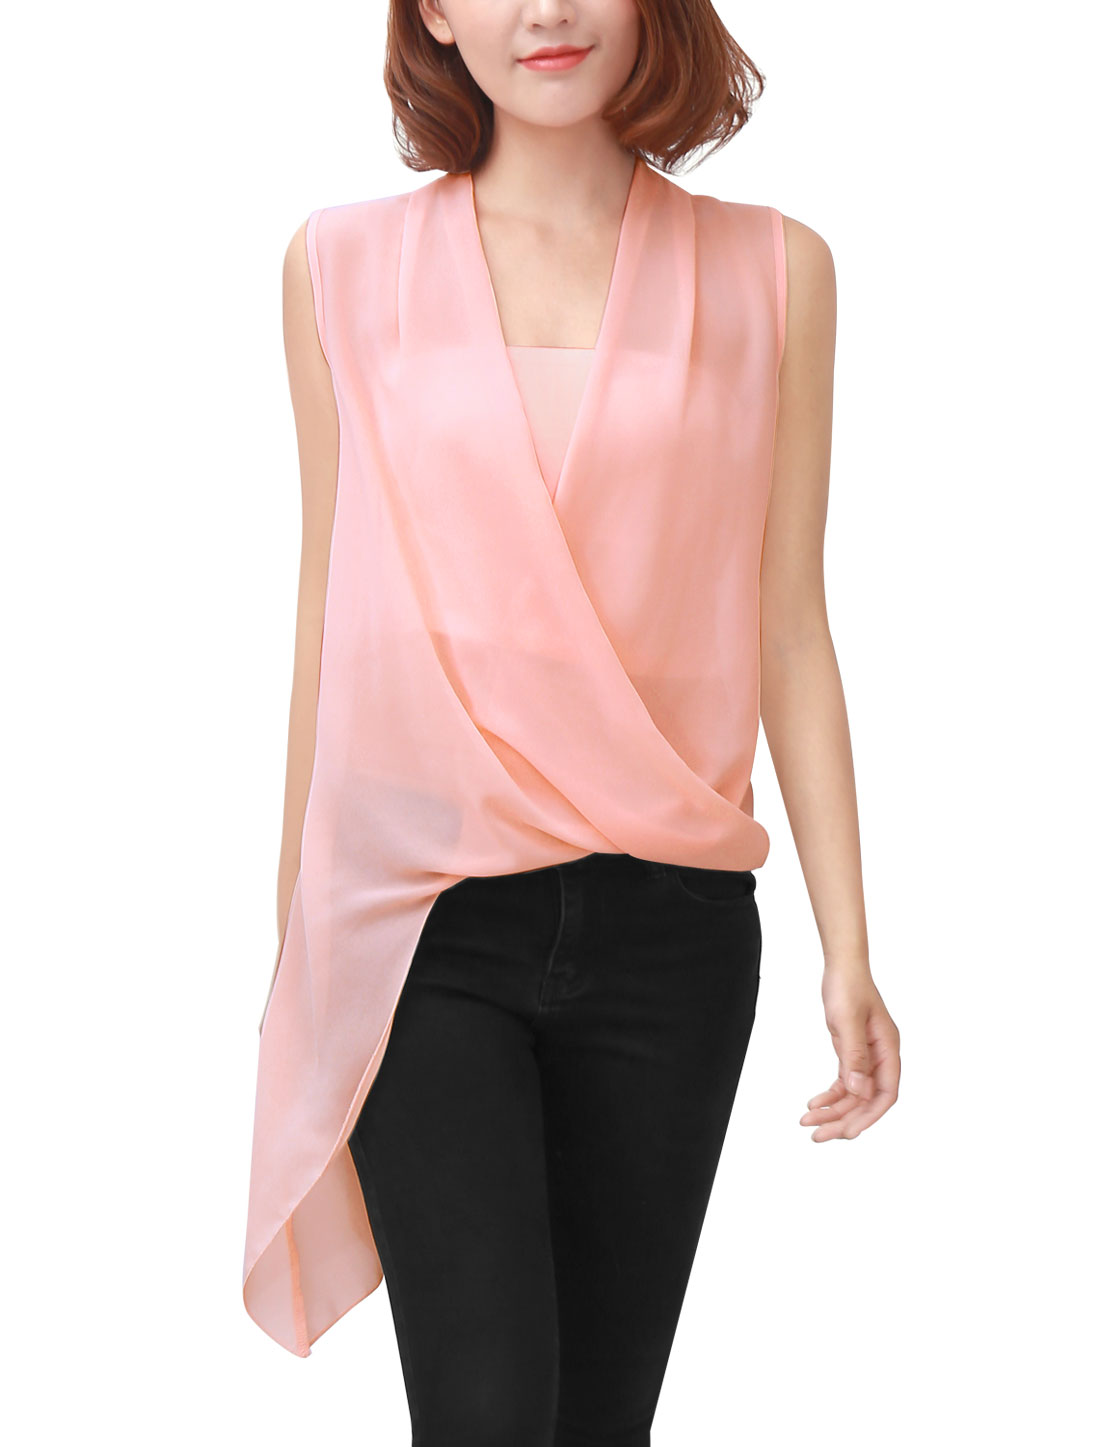 Women Draped Design Sleeveless Chiffon Blouse w Elastic Tube Top Nude Pink S